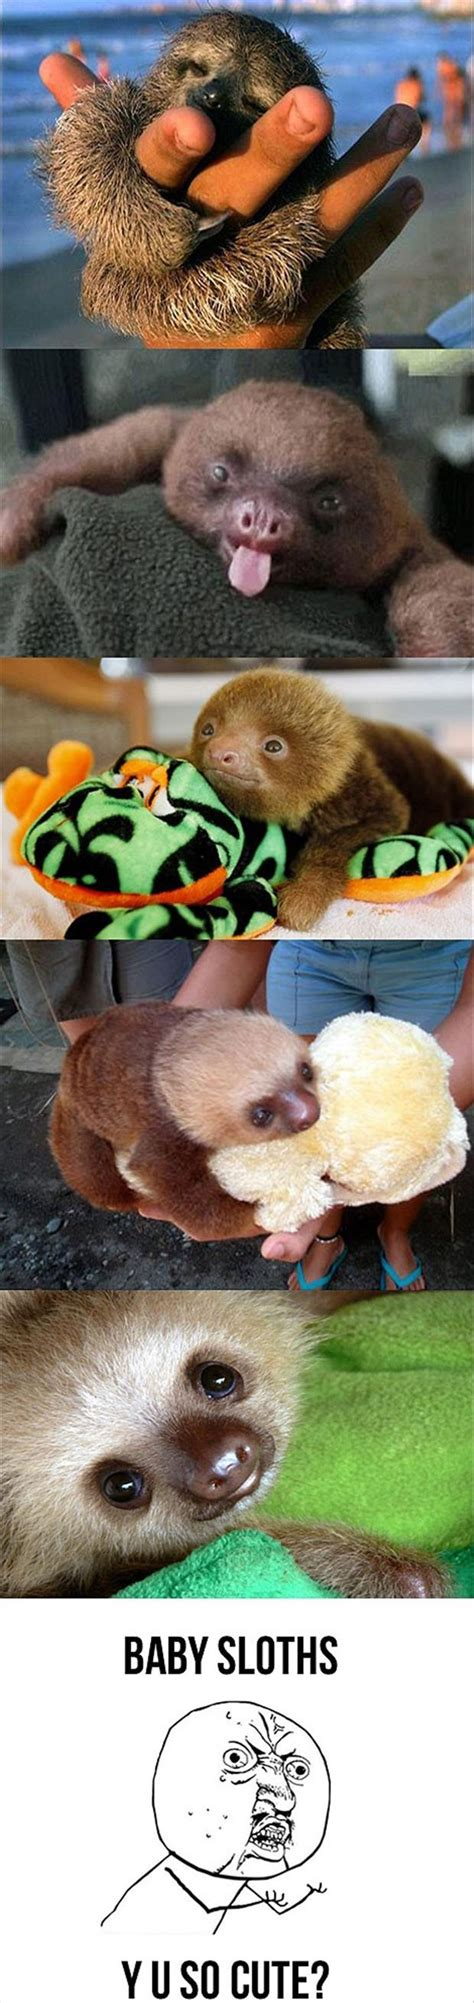 Baby Sloth Meme - funny pictures 53 pics